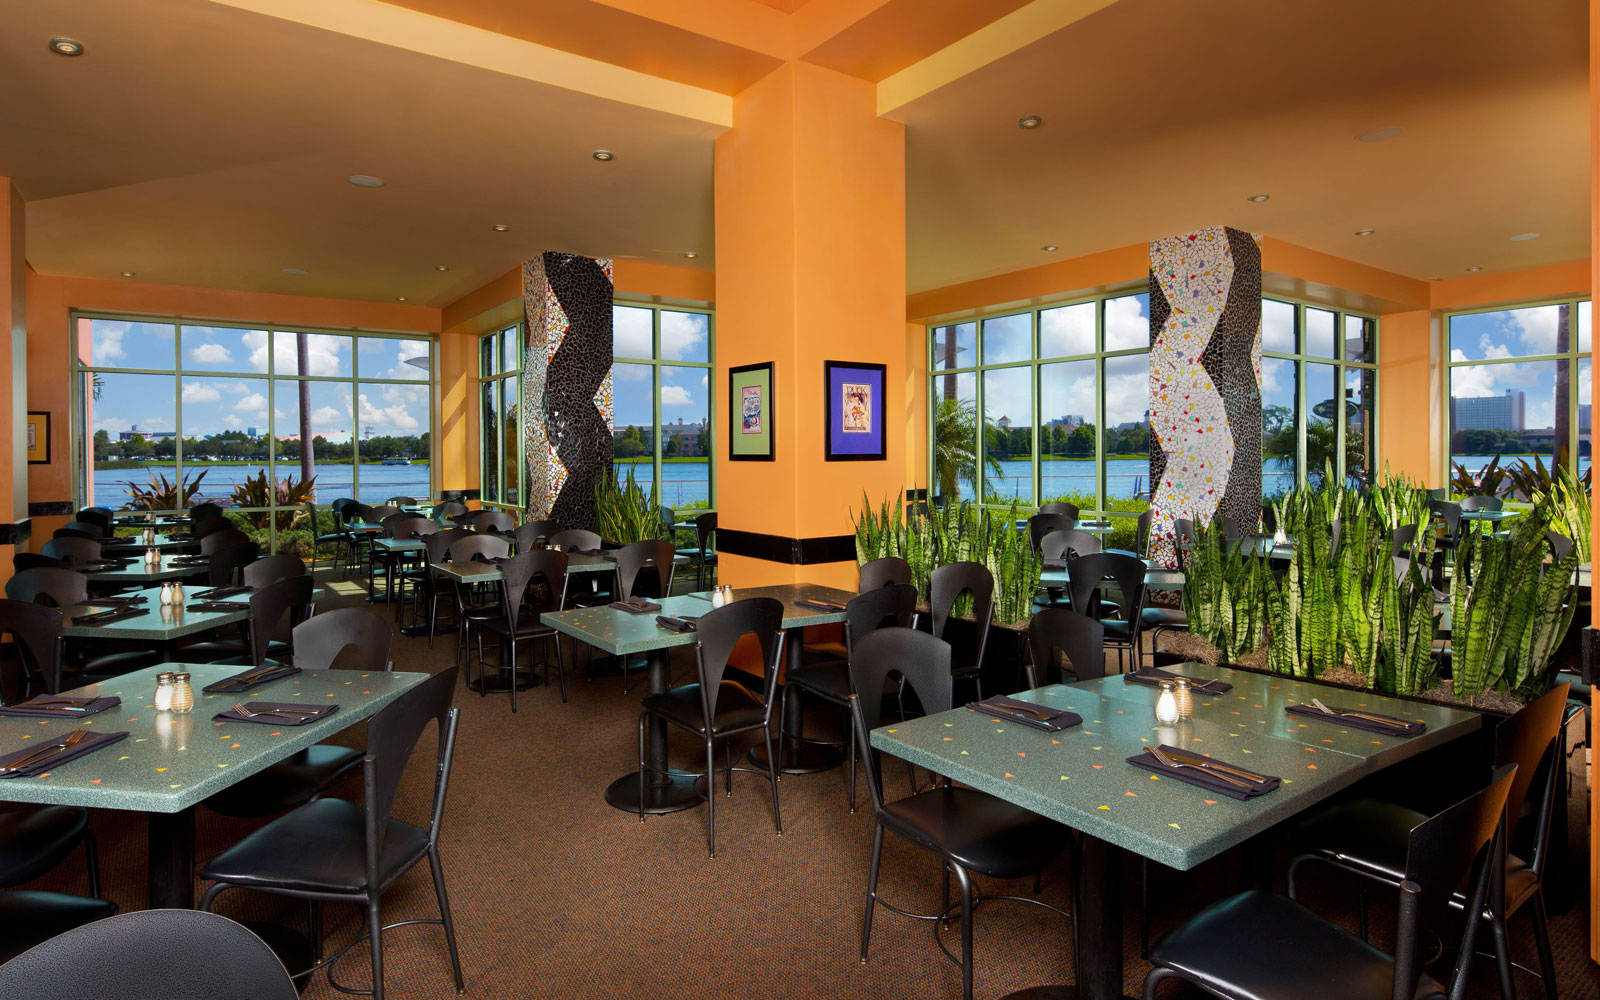 Dining room at Wolfgang Puck's Grand Cafe at Downtown Disney, FL